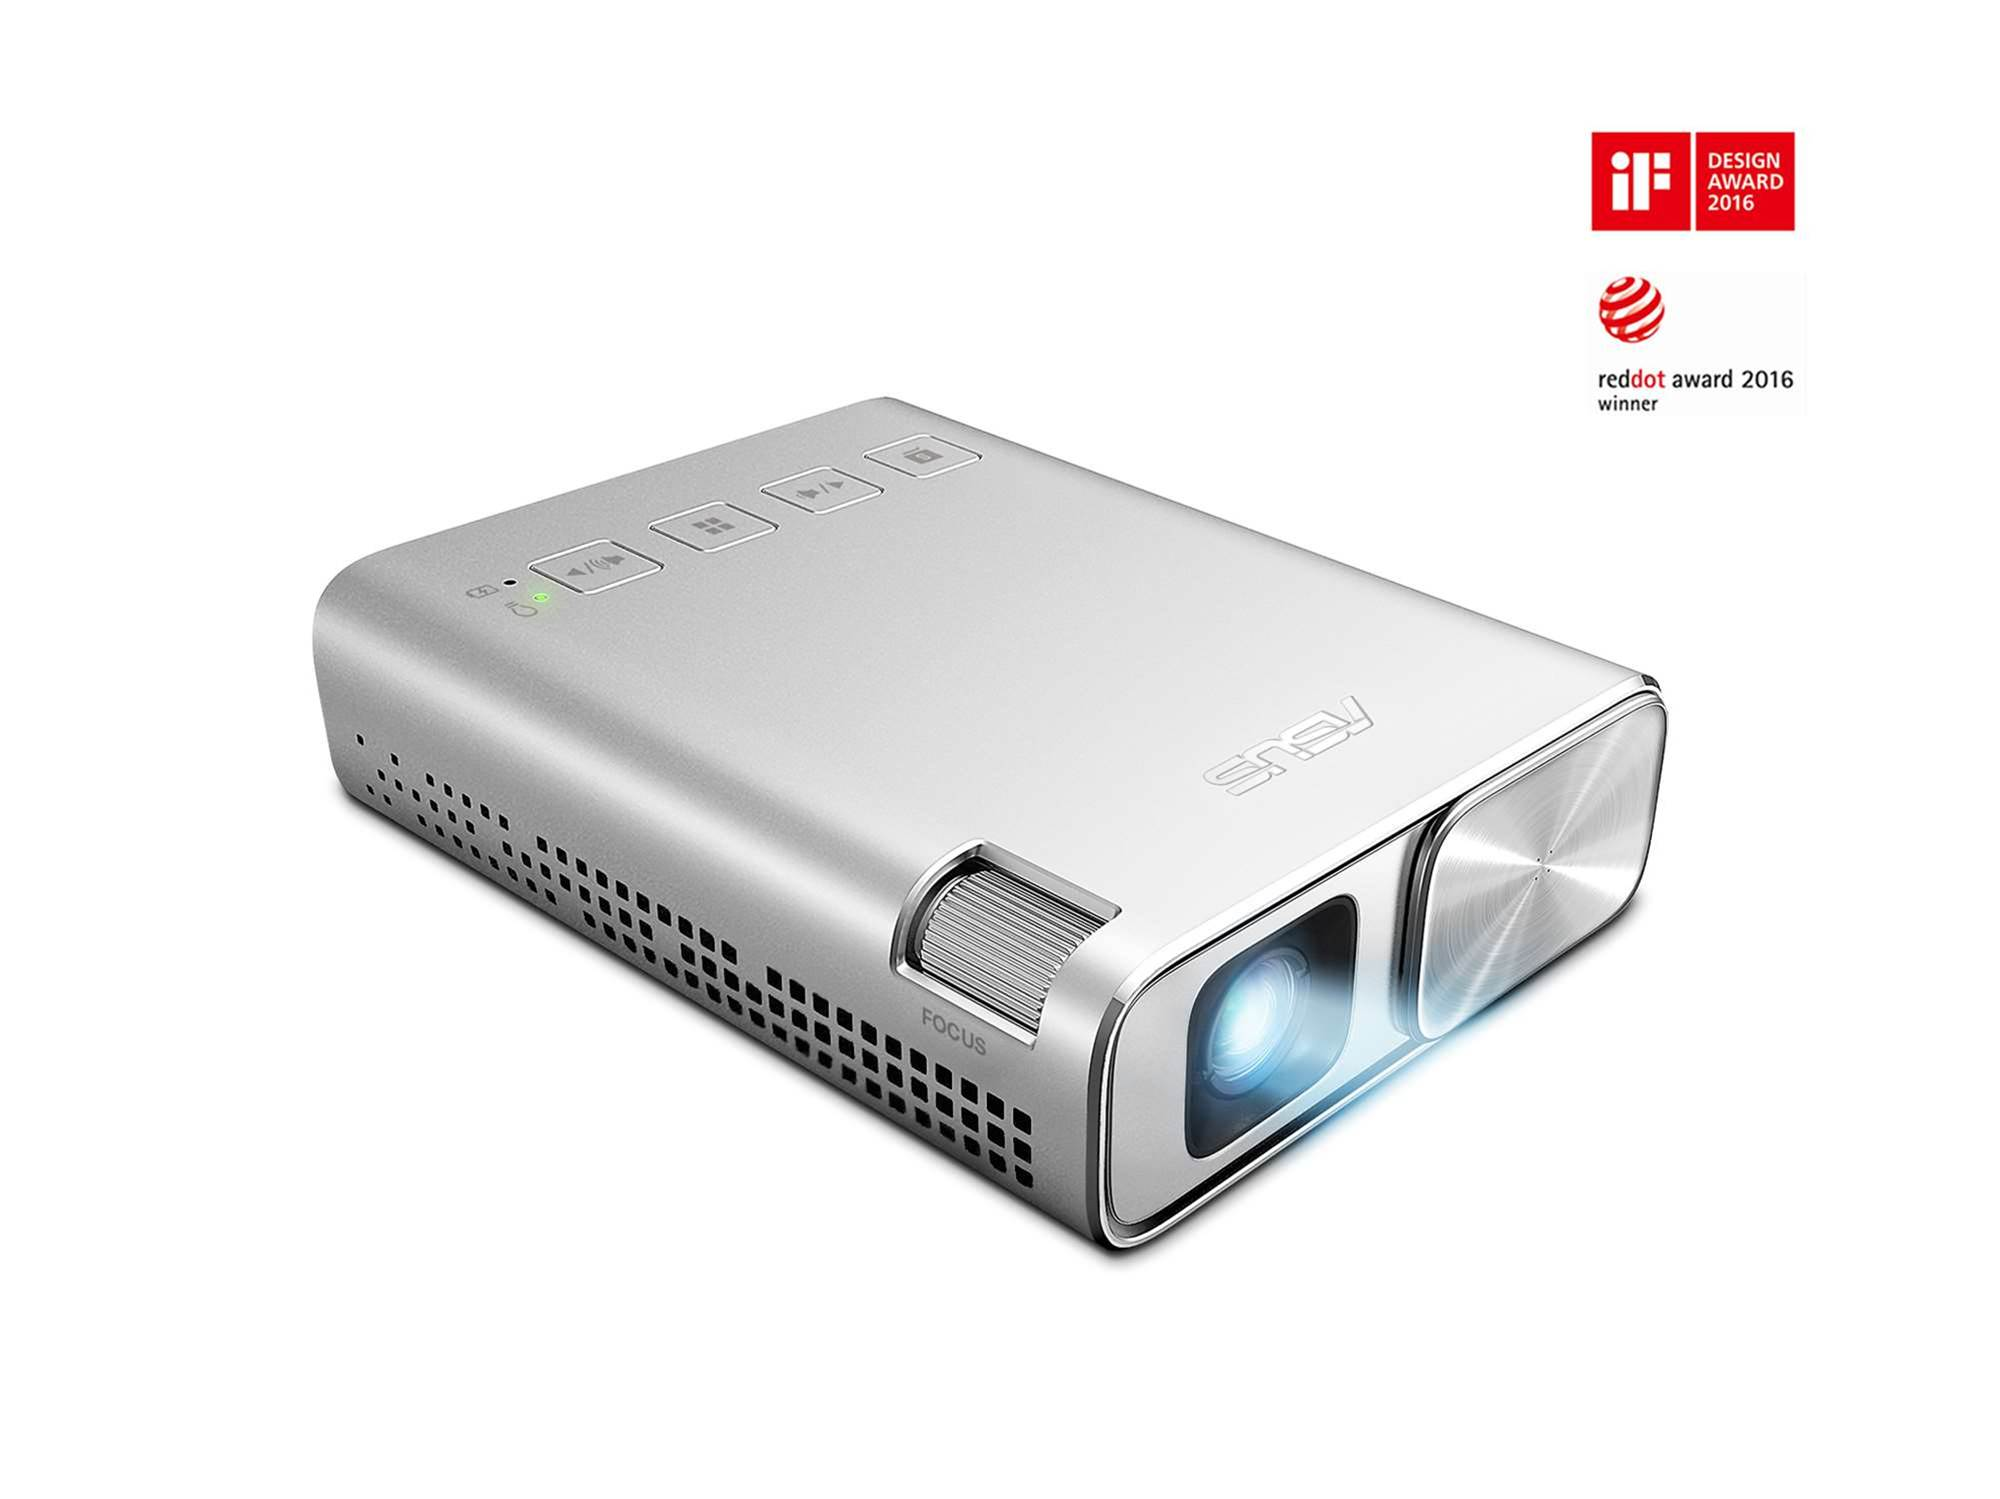 Asus reveals new palm-sized ZenBeam E1 projector